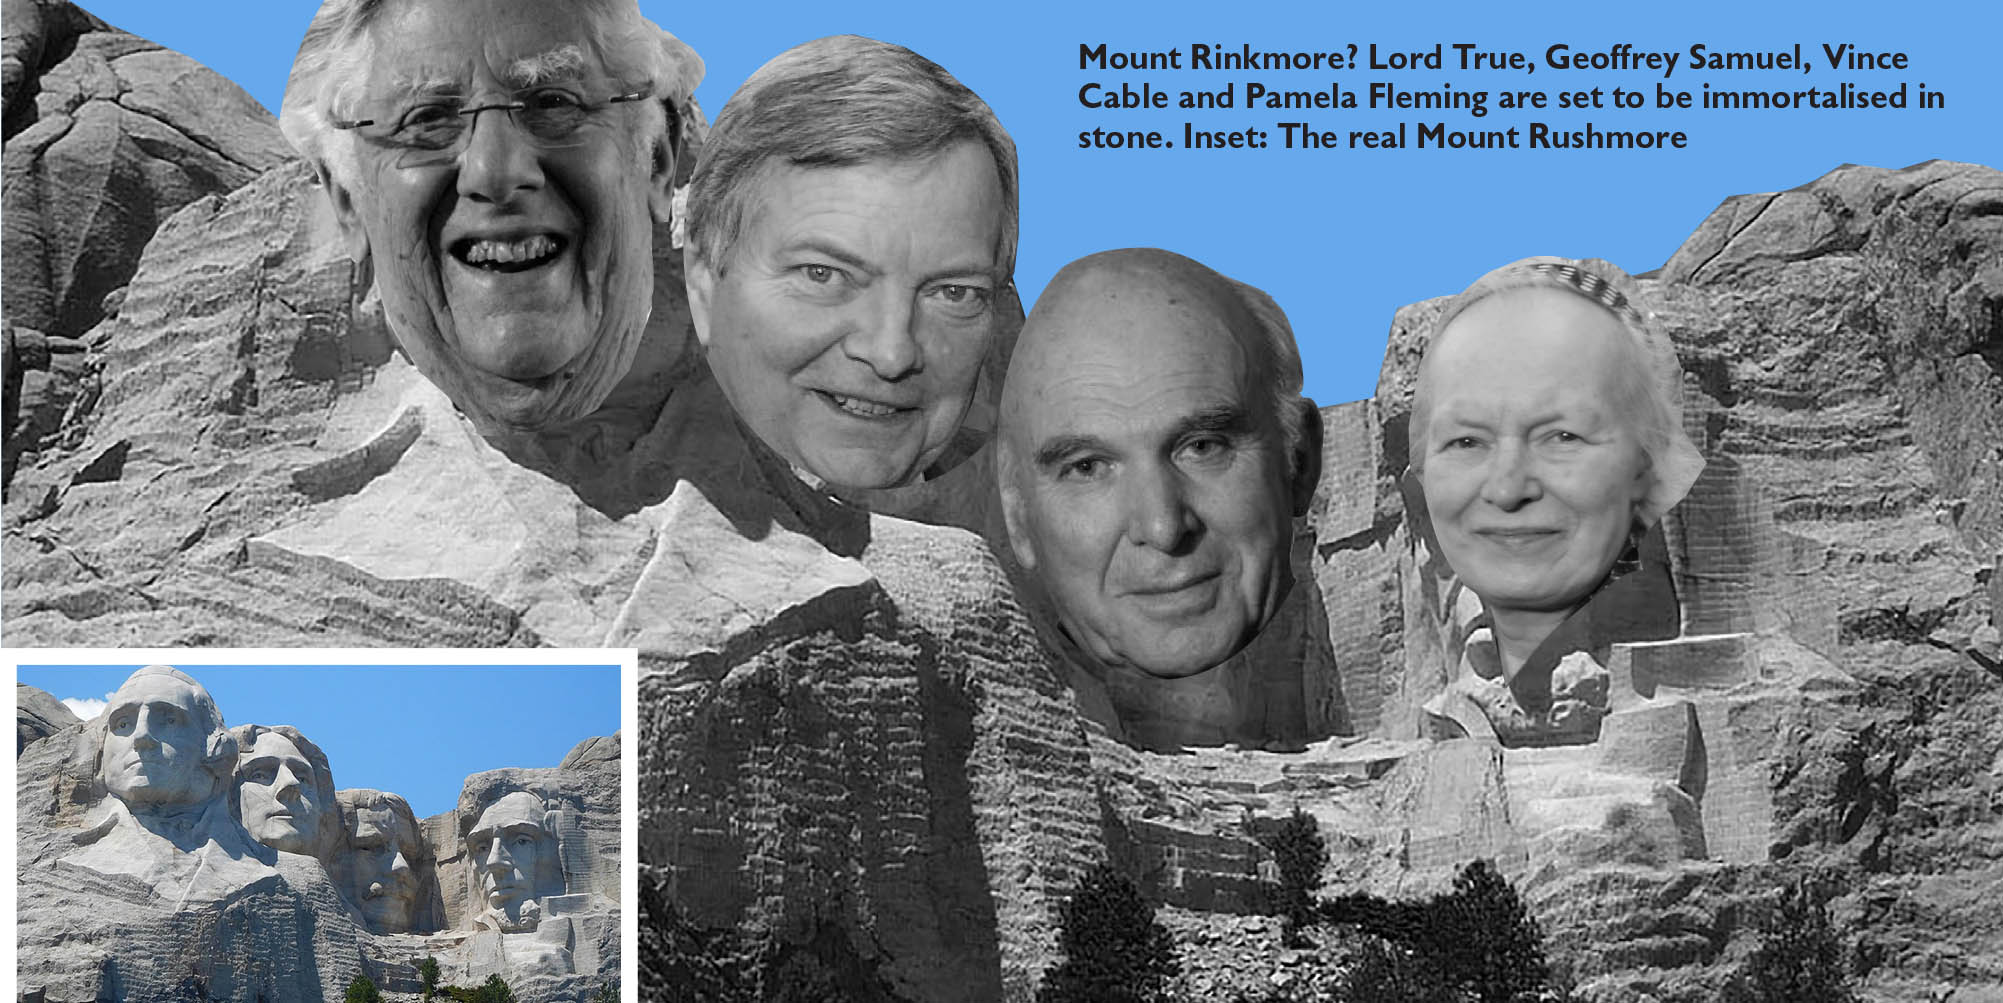 An artist's impression of how the monument, featuring Geoffrey Samuel, Lord True, Vince Cable and Pamela Fleming, will look